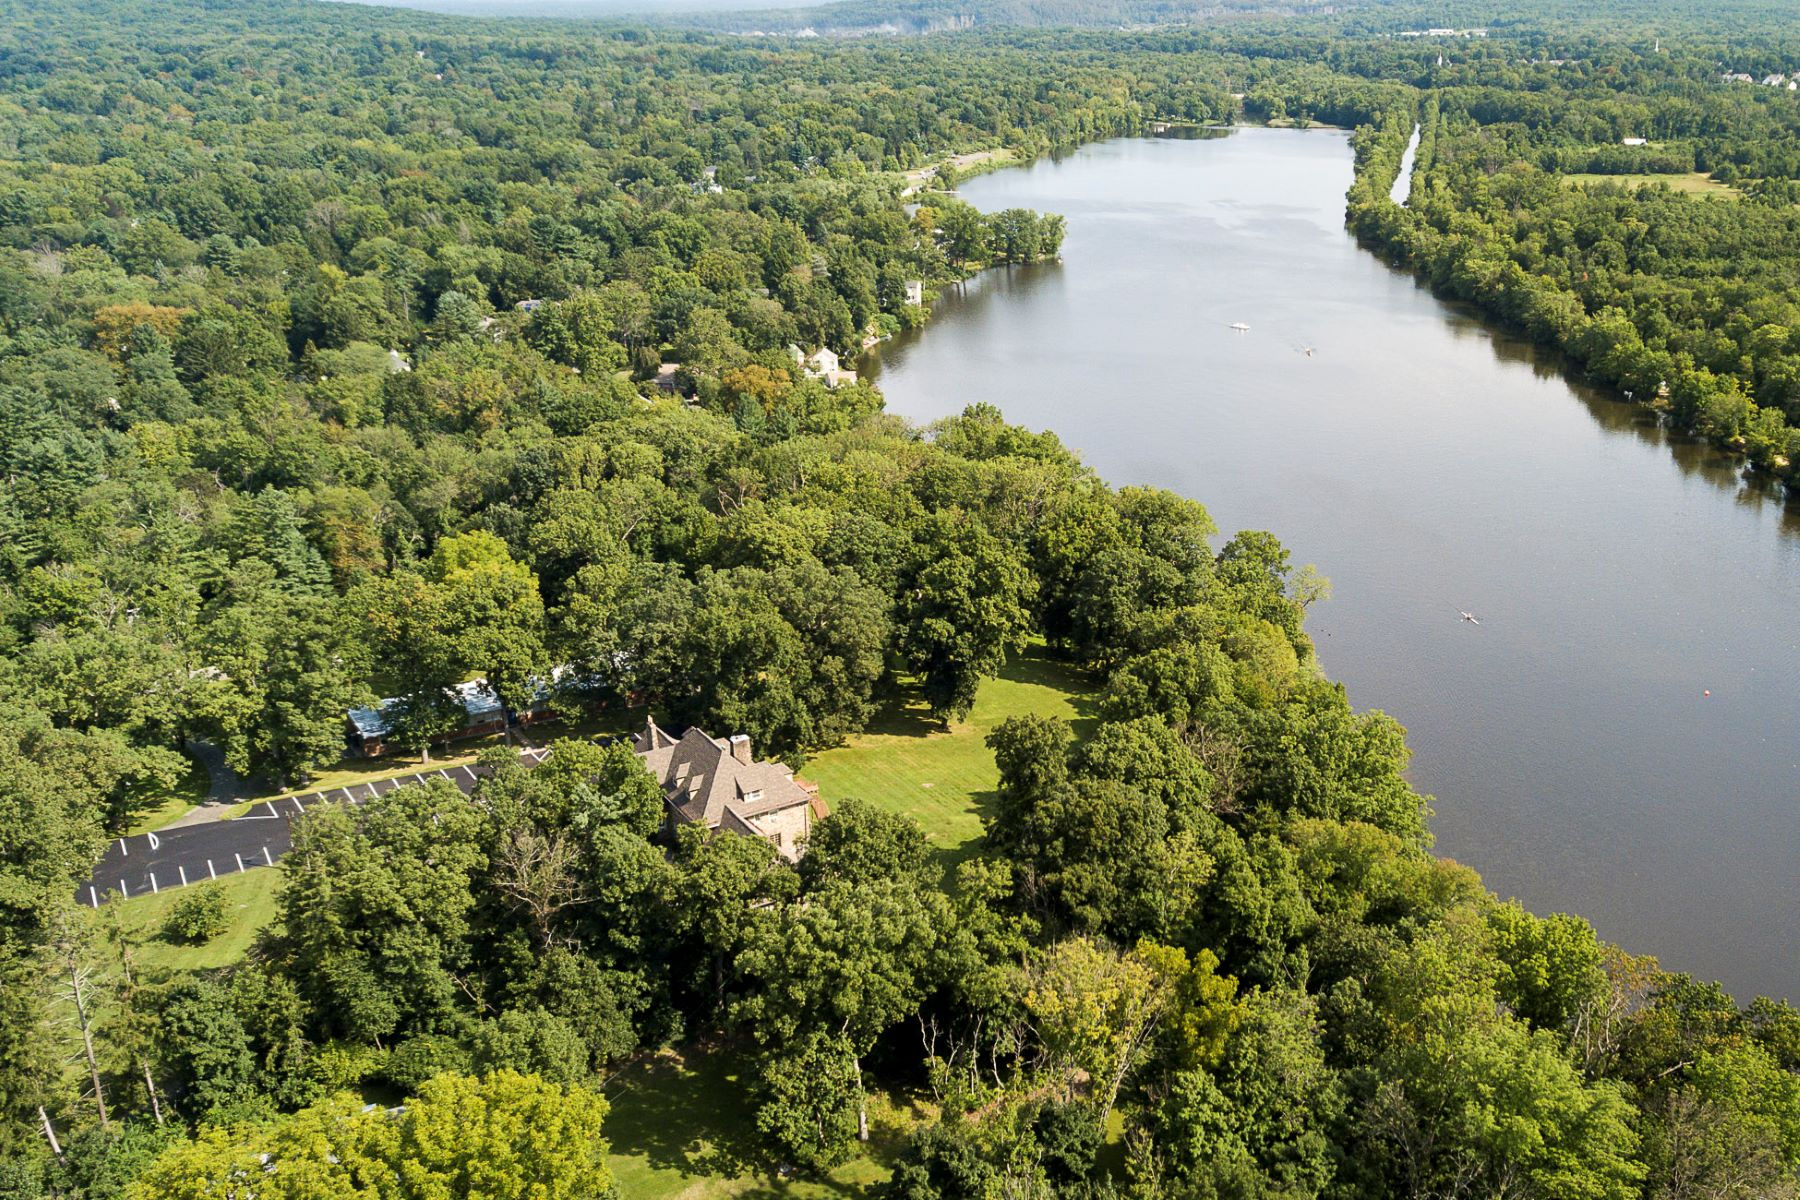 一戸建て のために 売買 アット Unprecedented Lake-Front Development Opportunity 601 Prospect Avenue, Princeton, ニュージャージー 08540 アメリカ